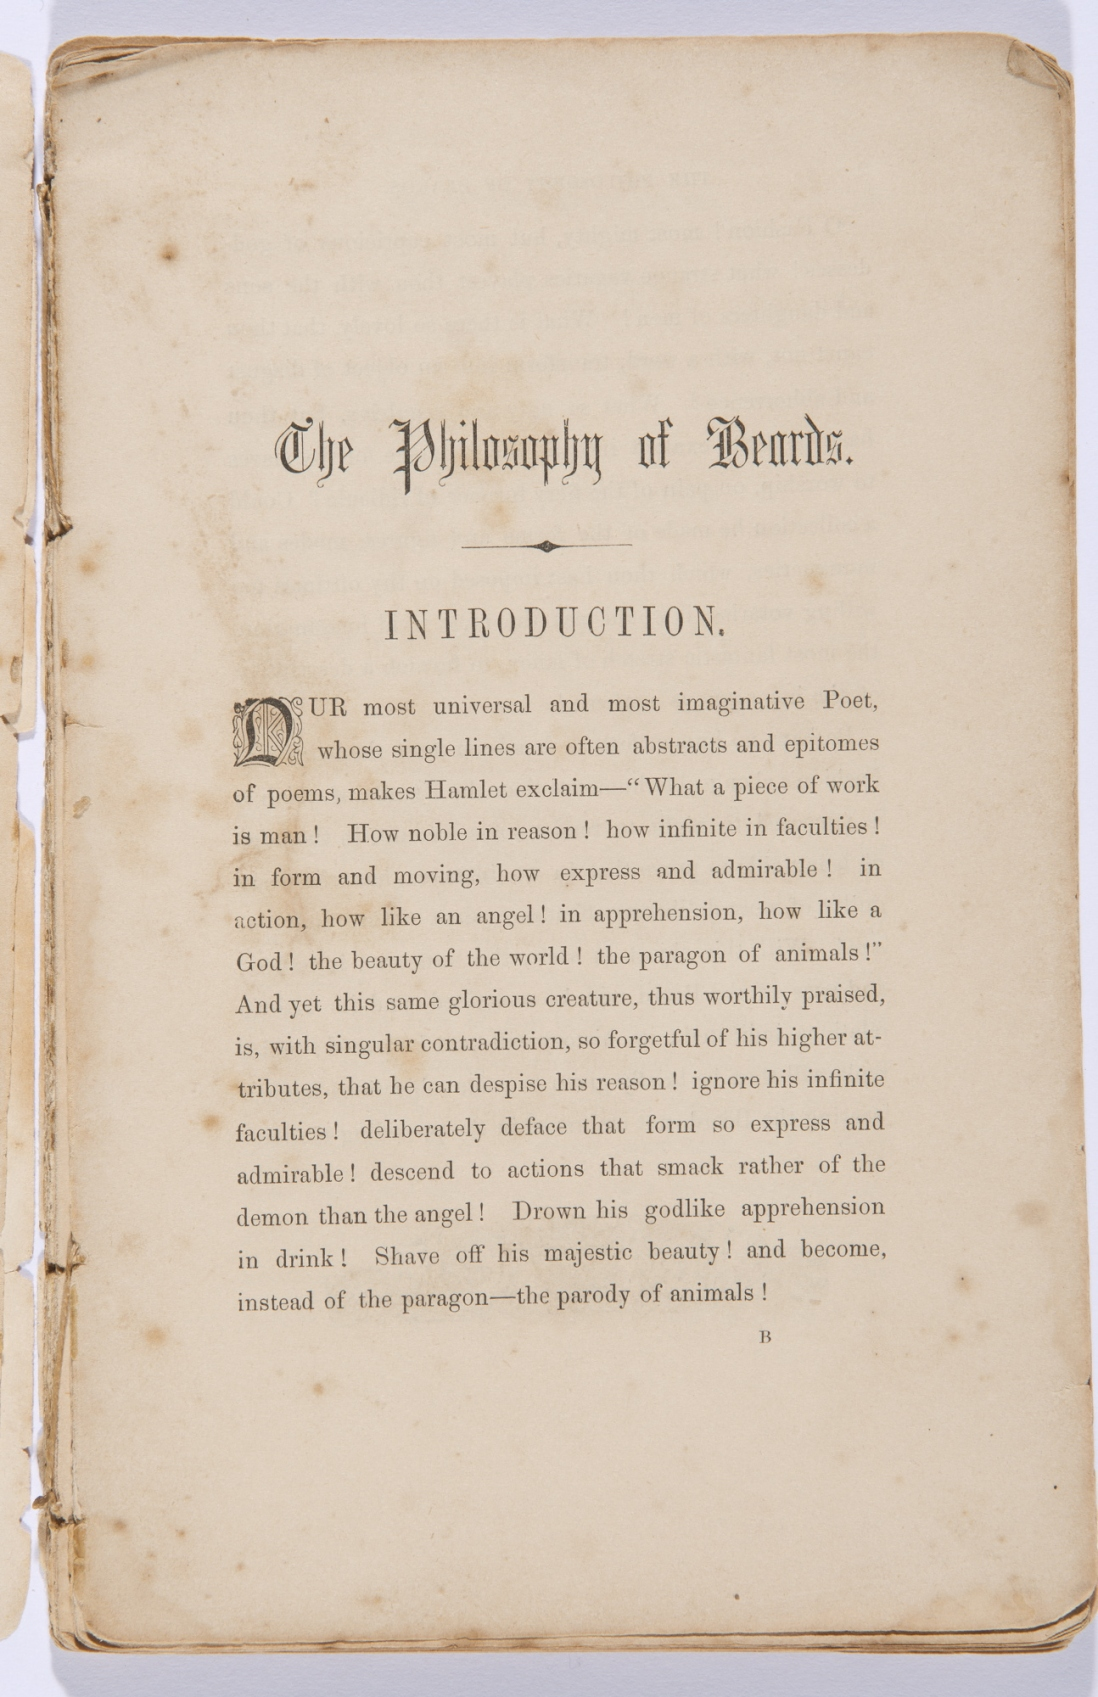 Printed page with Introduction as heading.